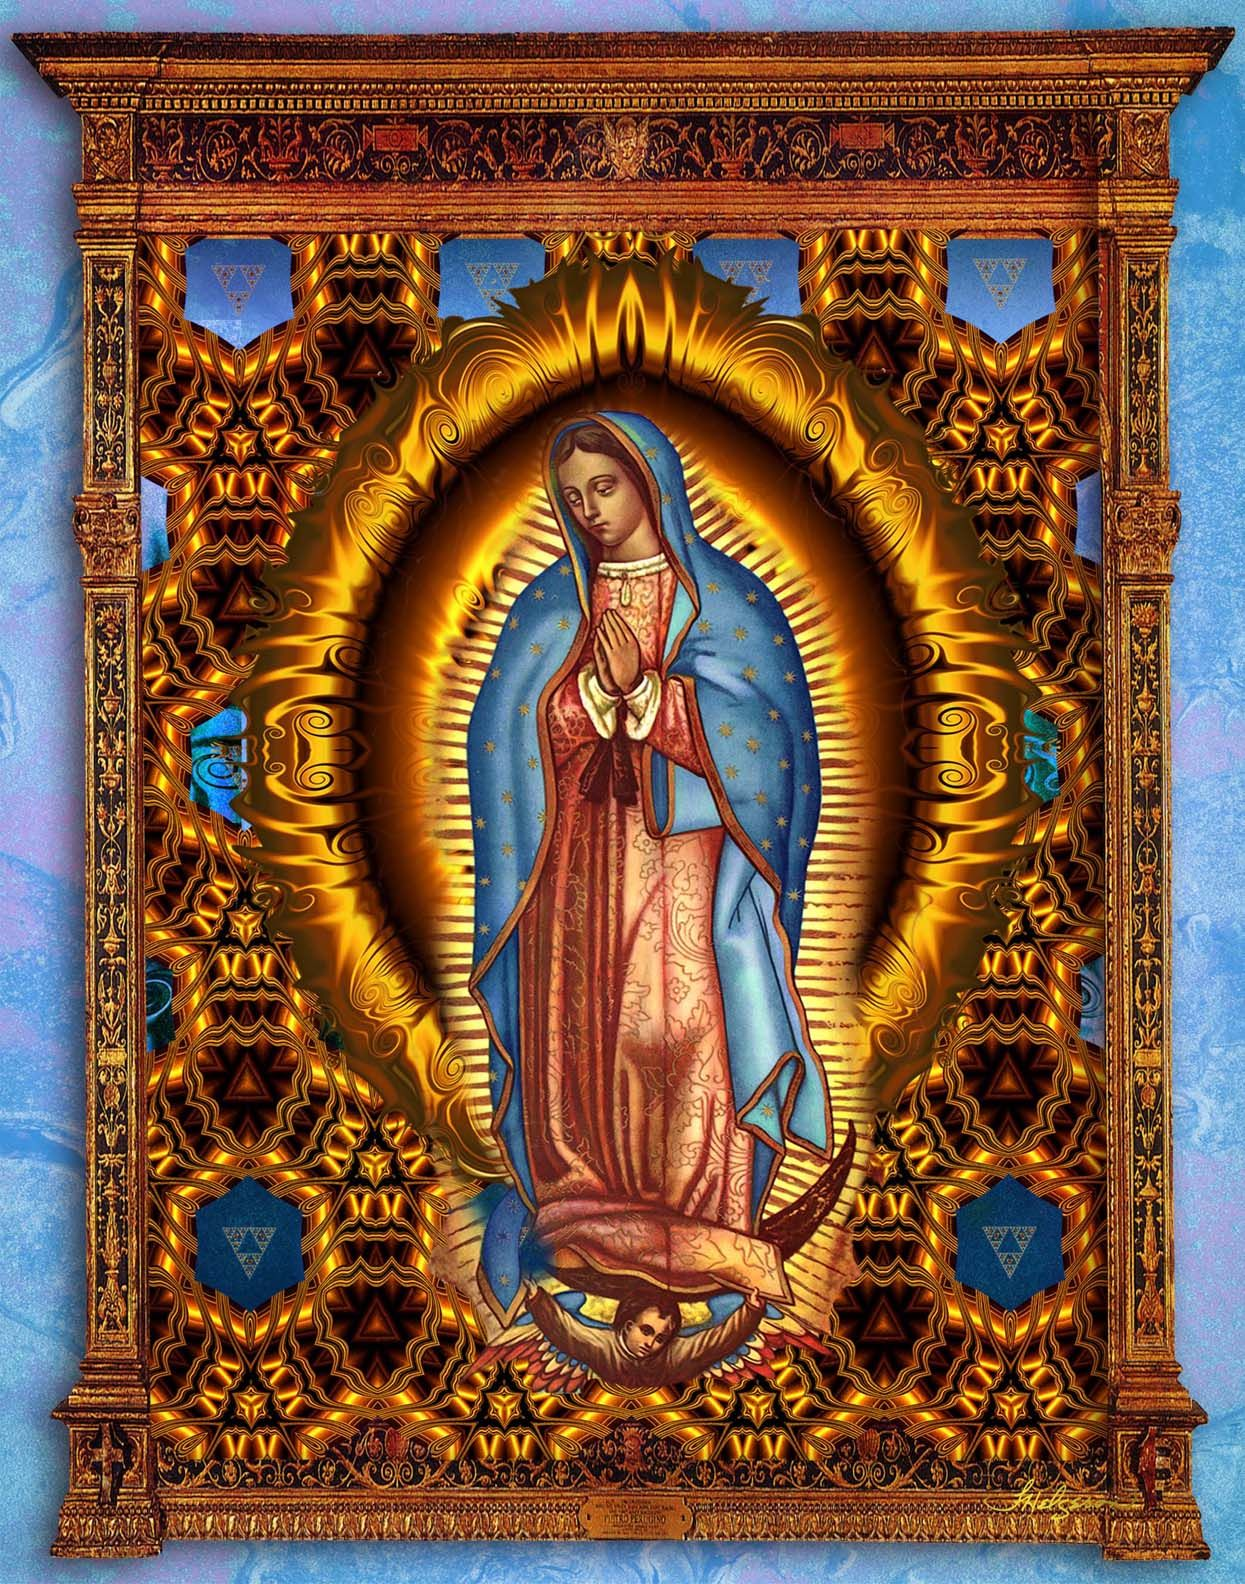 Our Lady Of Guadalupe Virgin Of Guadalupe Timothy